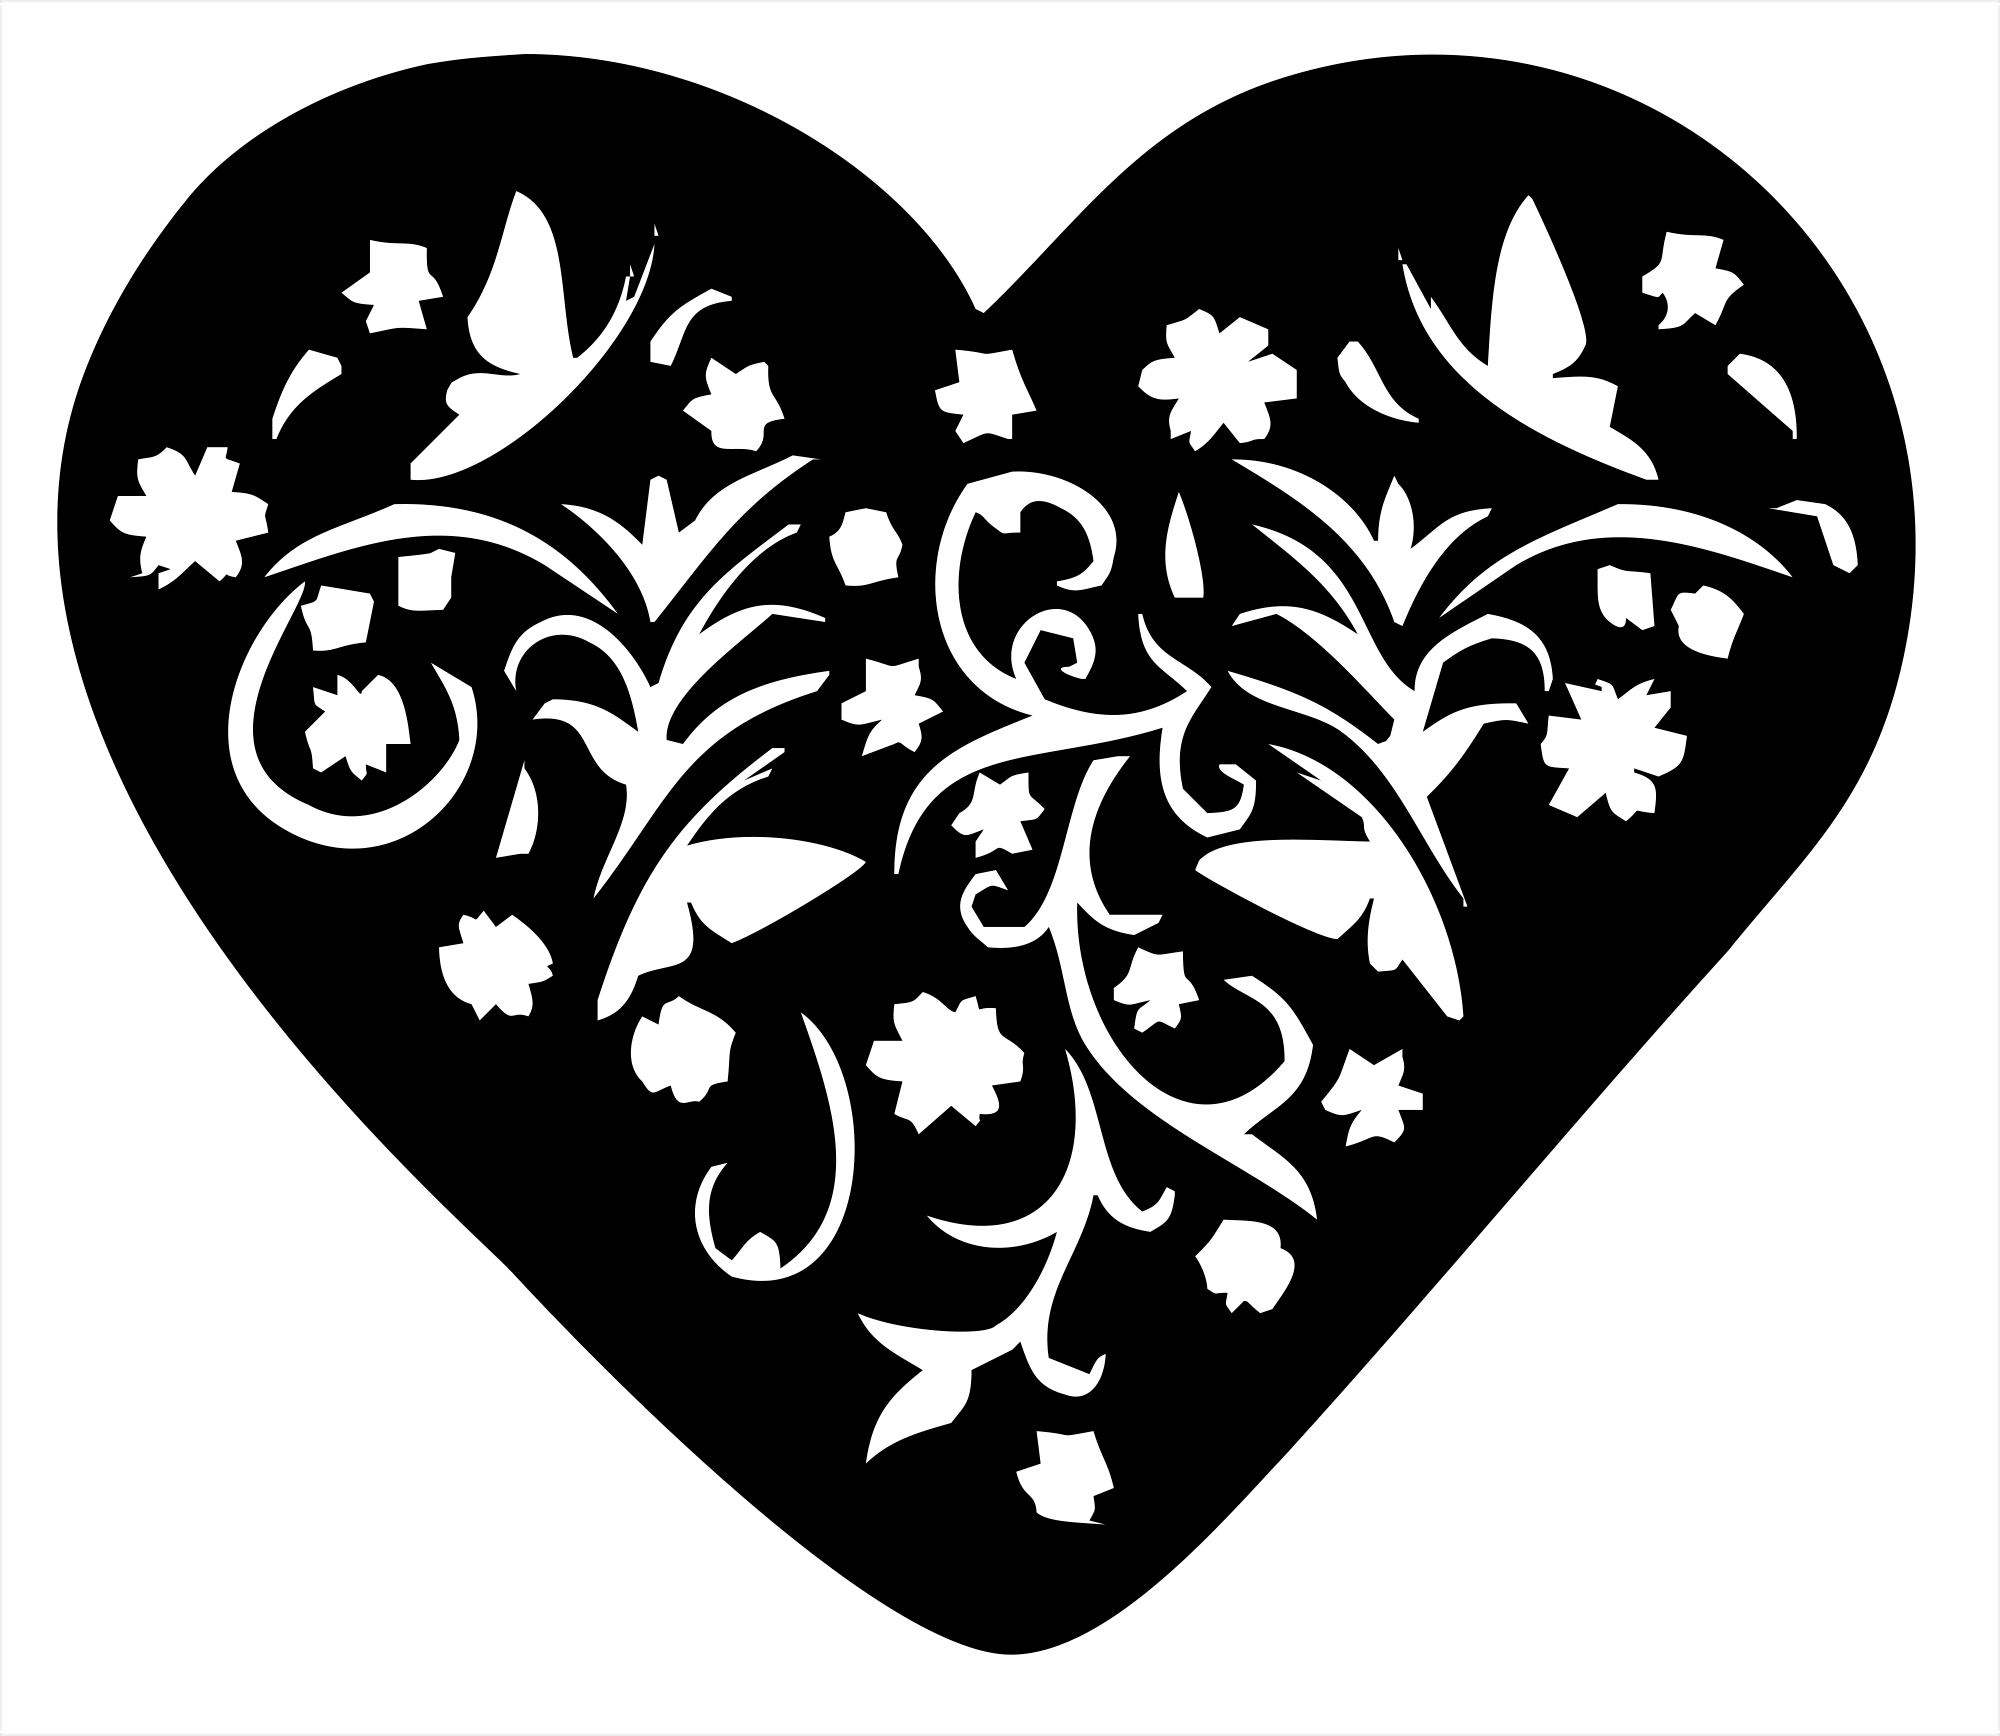 printable heart pictures hearts free printable templates coloring pages heart pictures printable